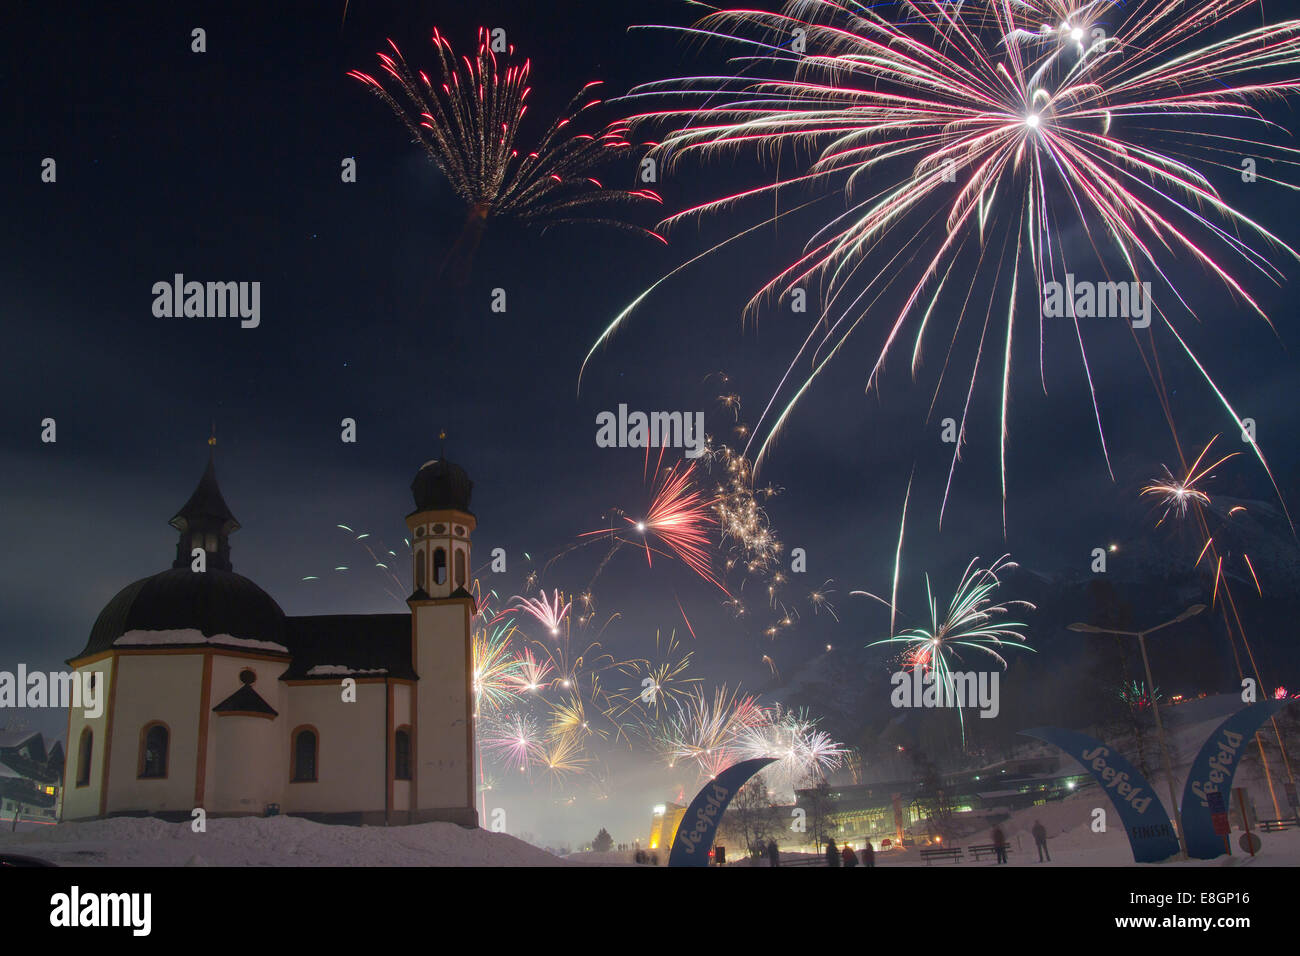 New Year's Eve fireworks in Seefeld, Tyrol, Austria - Stock Image